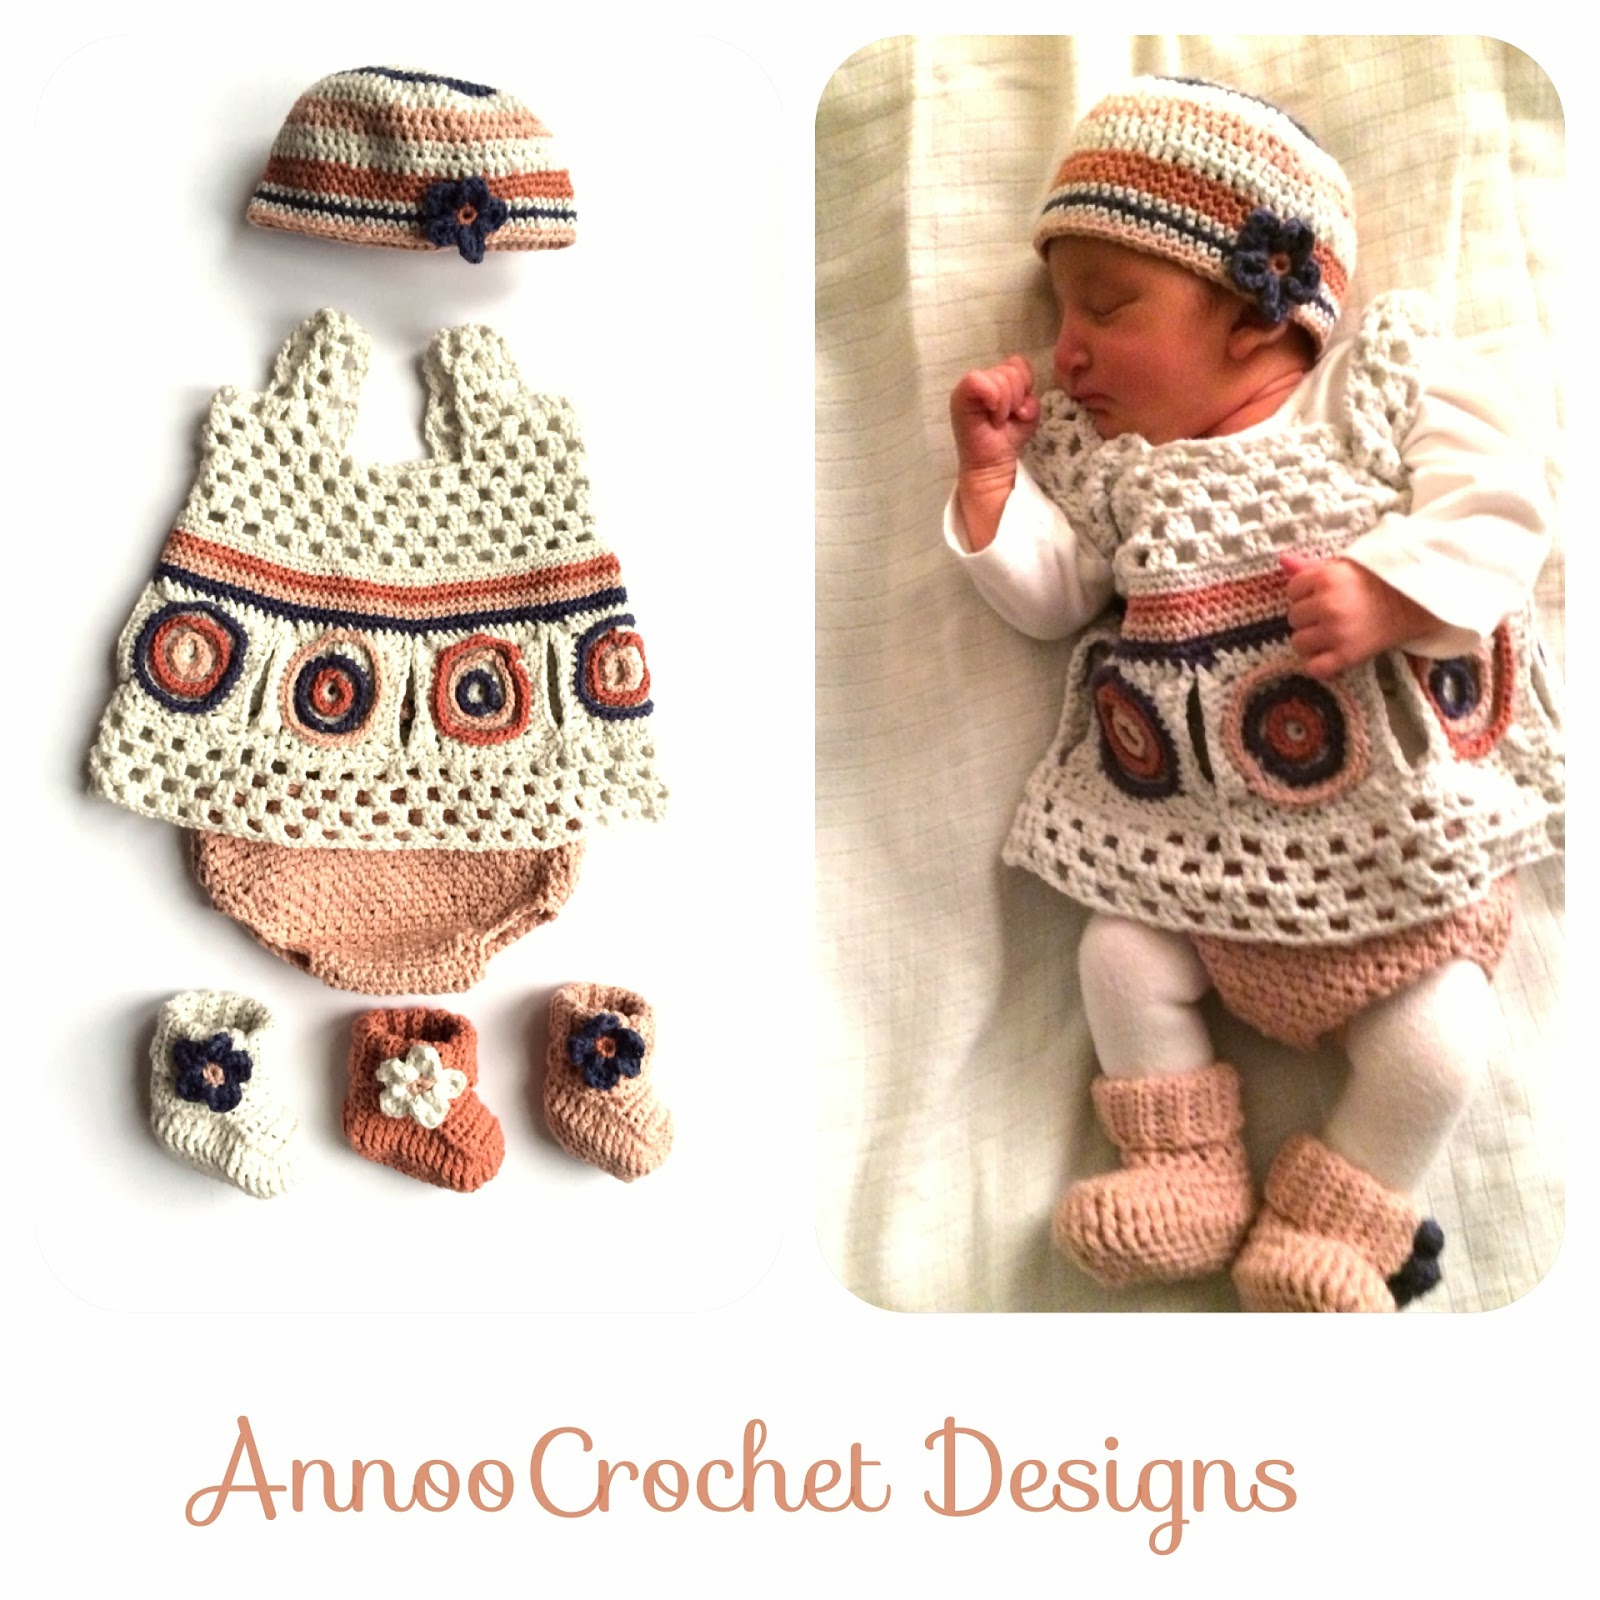 Annoo\'s Crochet World: January 2014